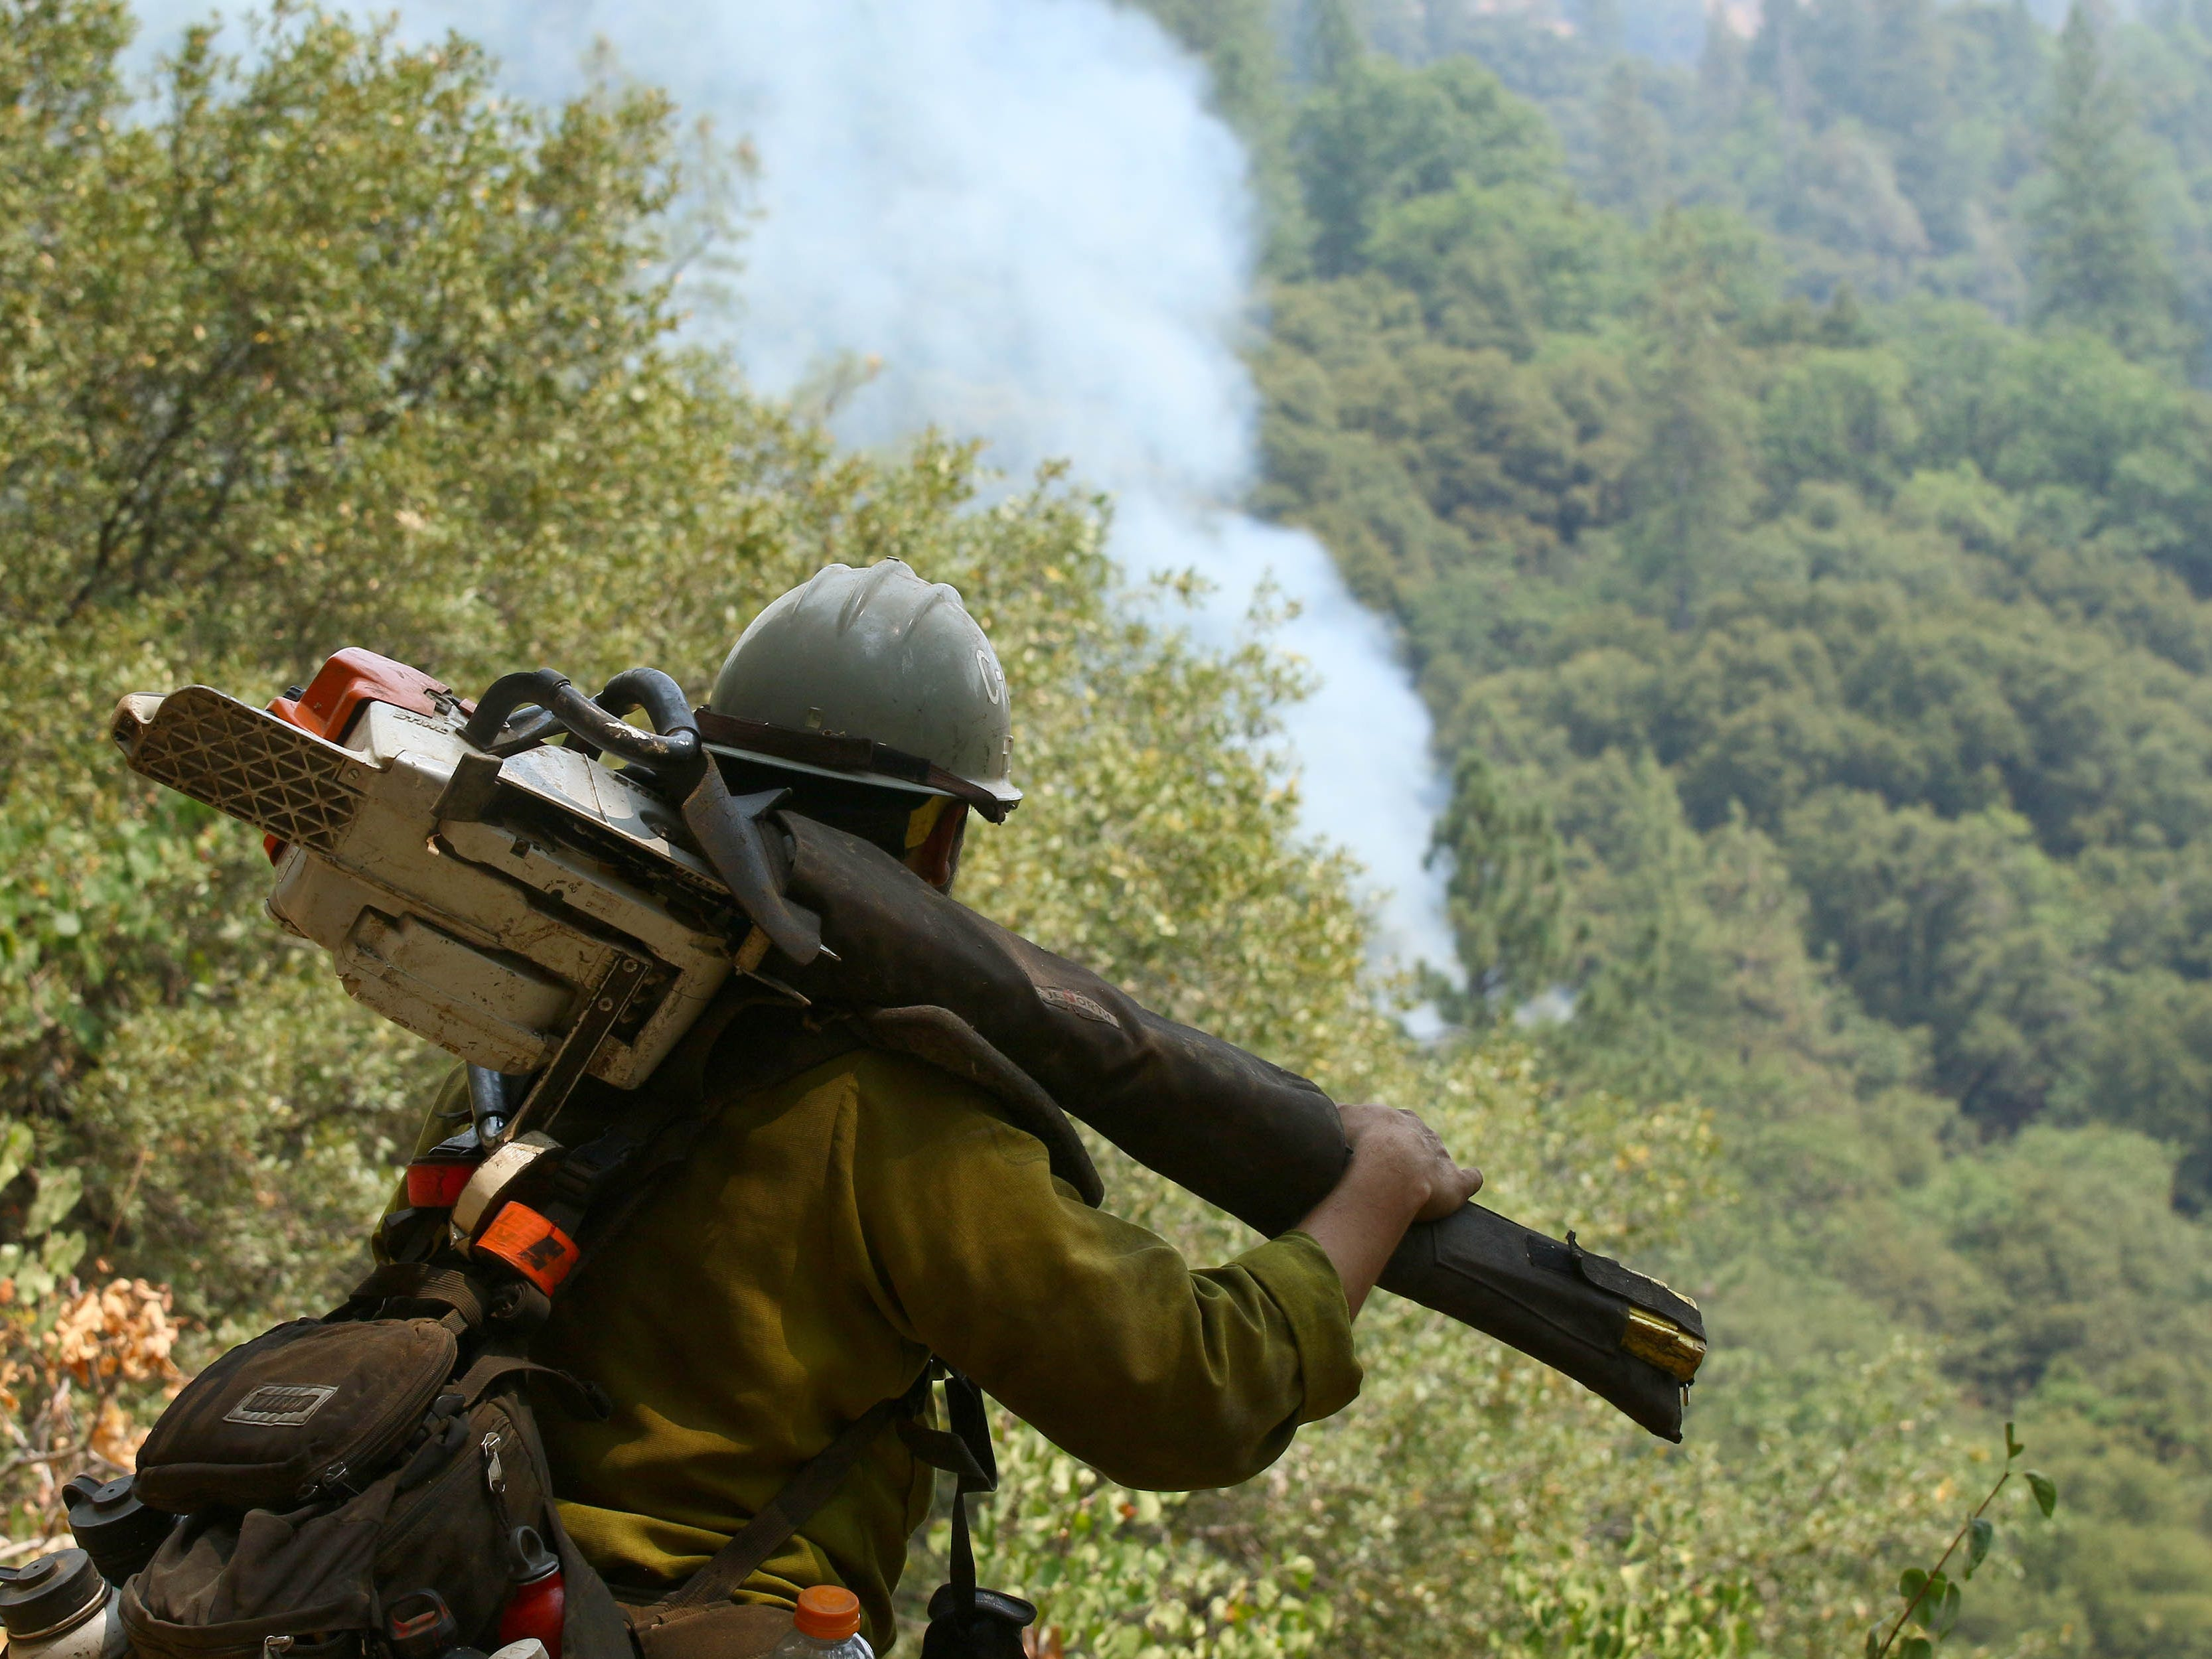 Dane Bjerklie with the U.S Forest Service's Type II Initial Attack crew, watches as the smoke rises on the ridge near Bollibokka along the McCloud River by Gillman Road on Saturday, Aug. 18, 2018. (Special to the Record Searchlight photo by Hung T. Vu)